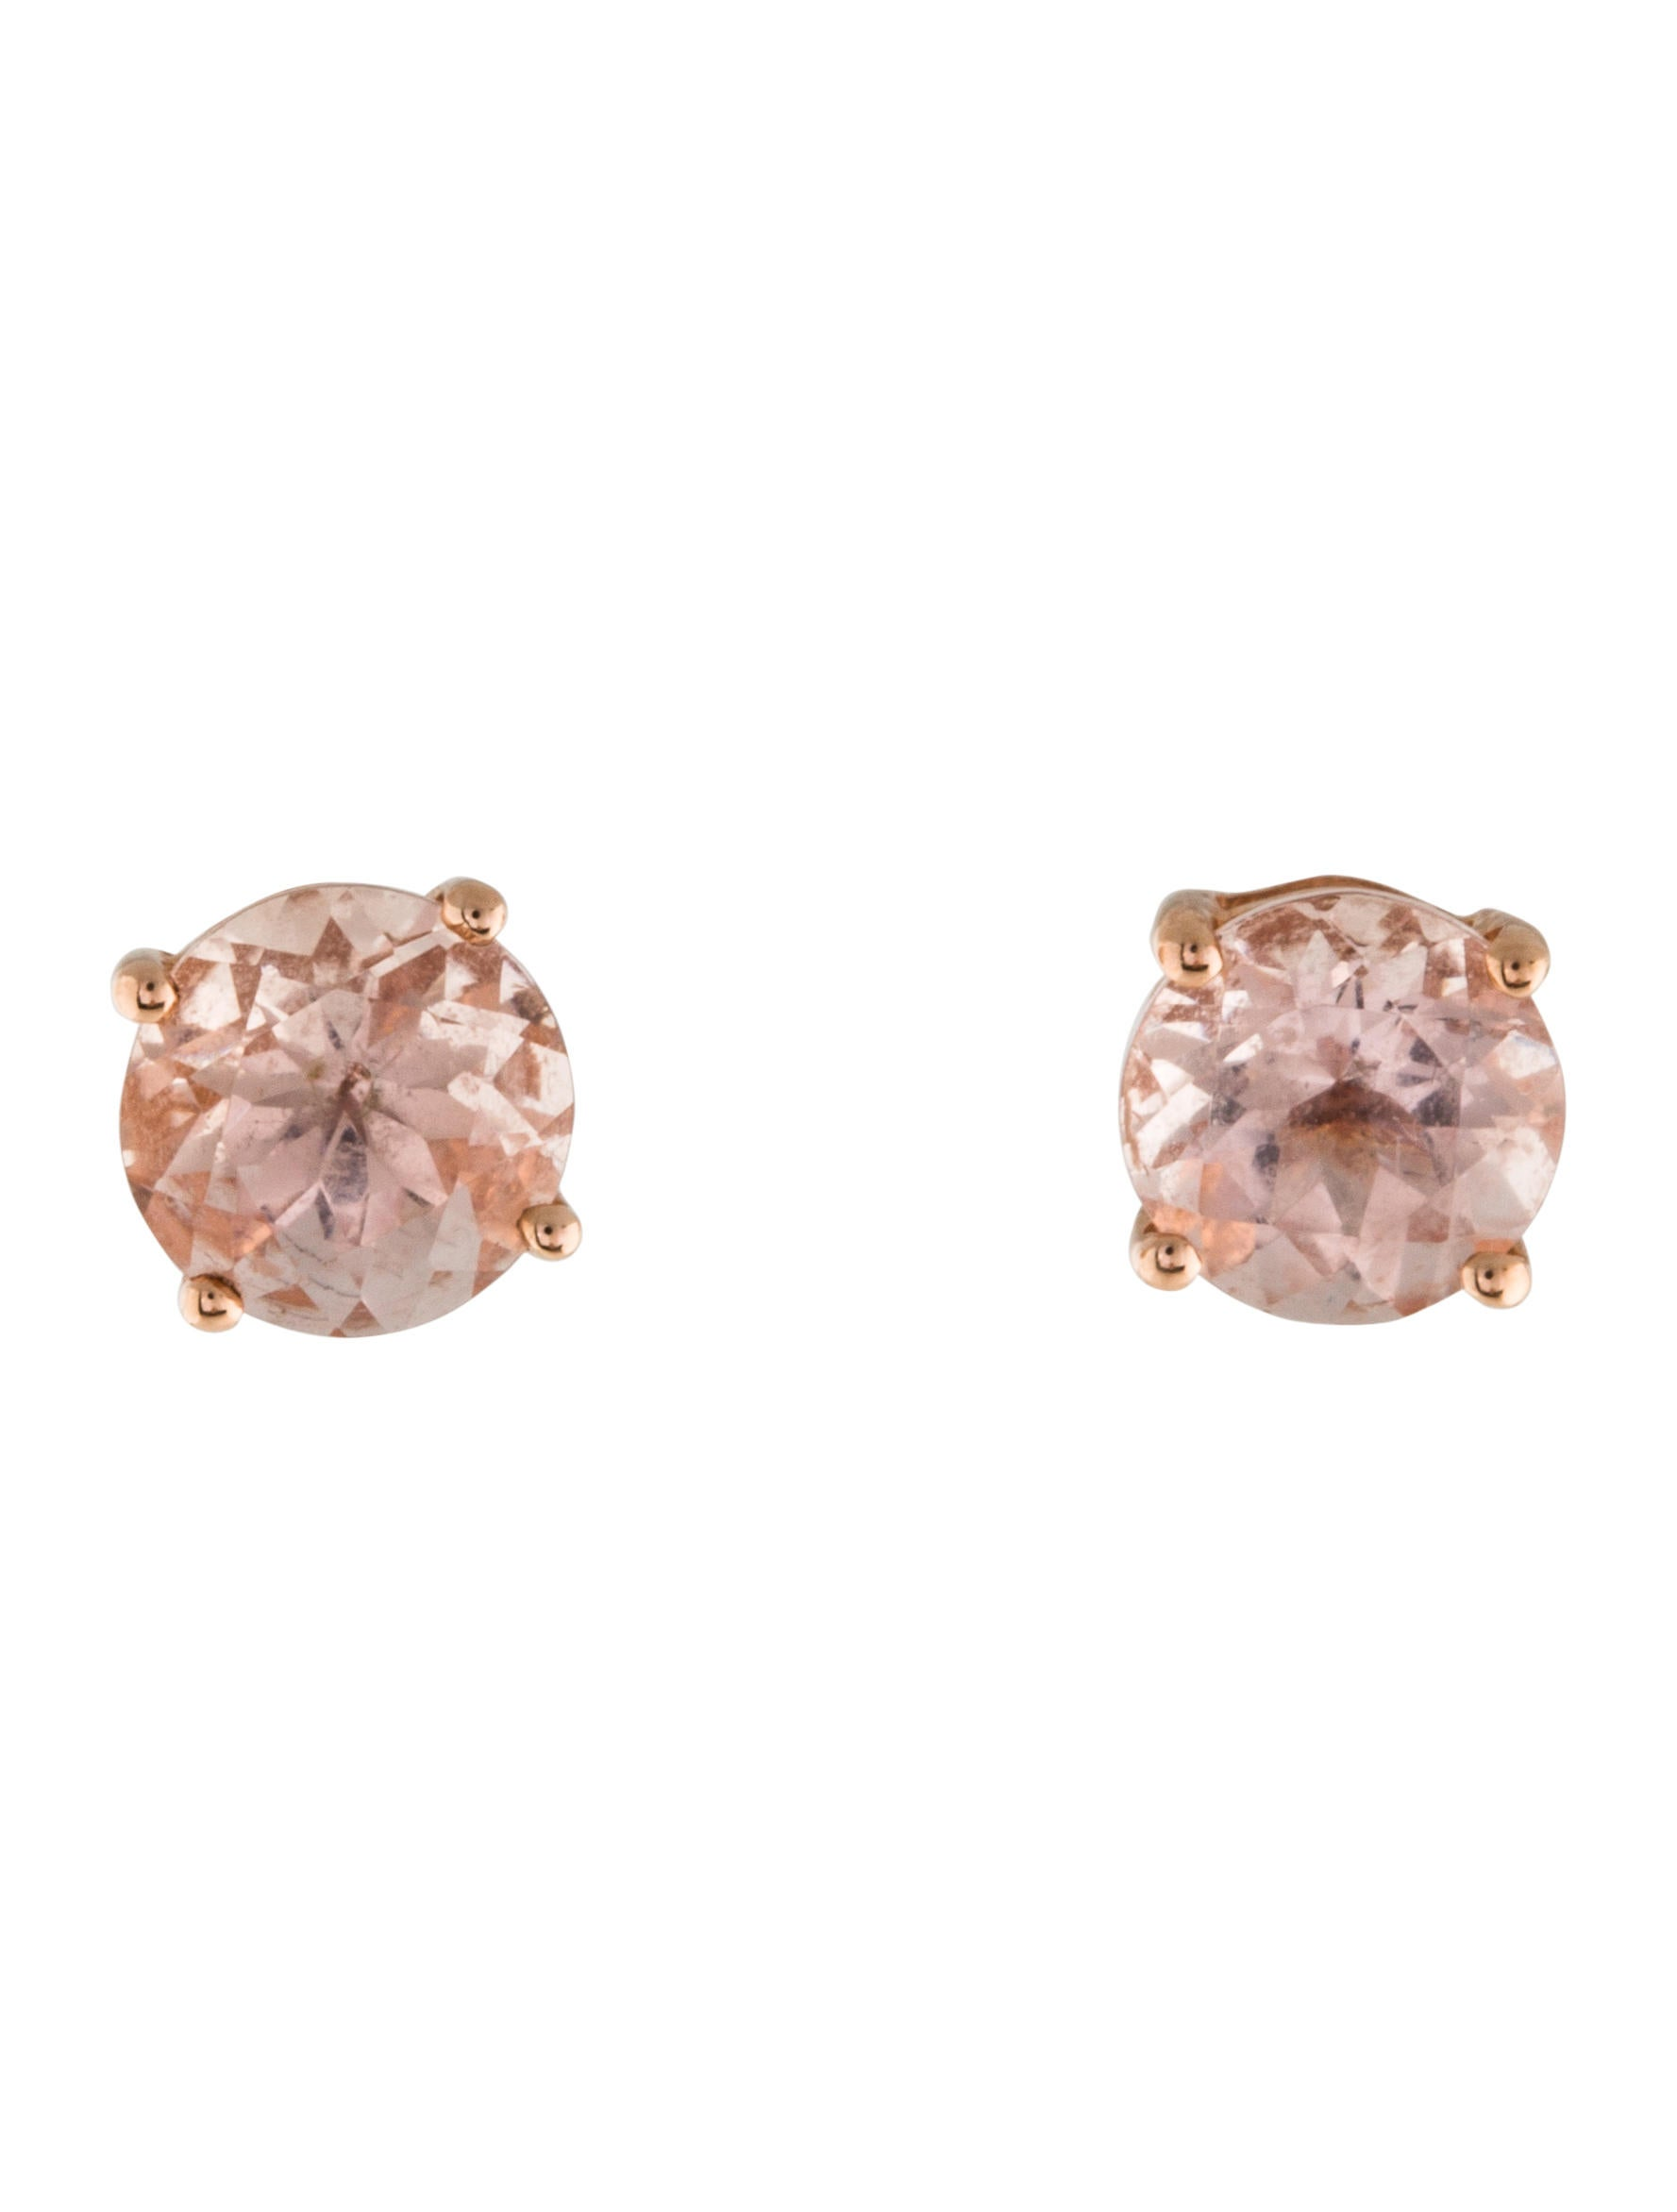 curwood jewellers rose earrings gold morganite stud scj and simon diamond